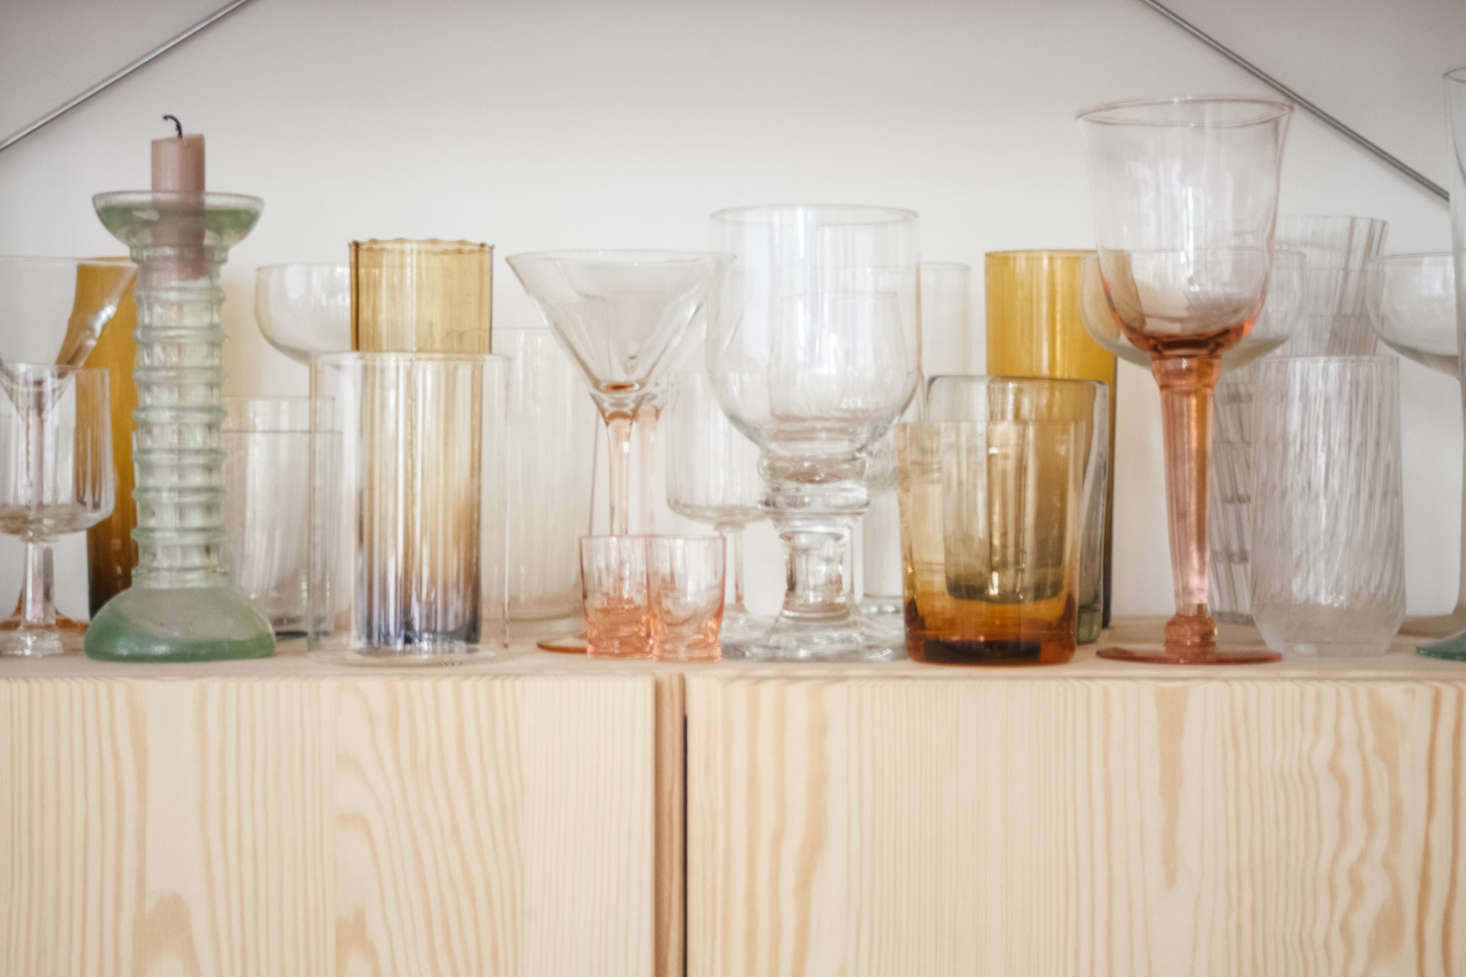 Glassware in shades of amber, pink, and green.